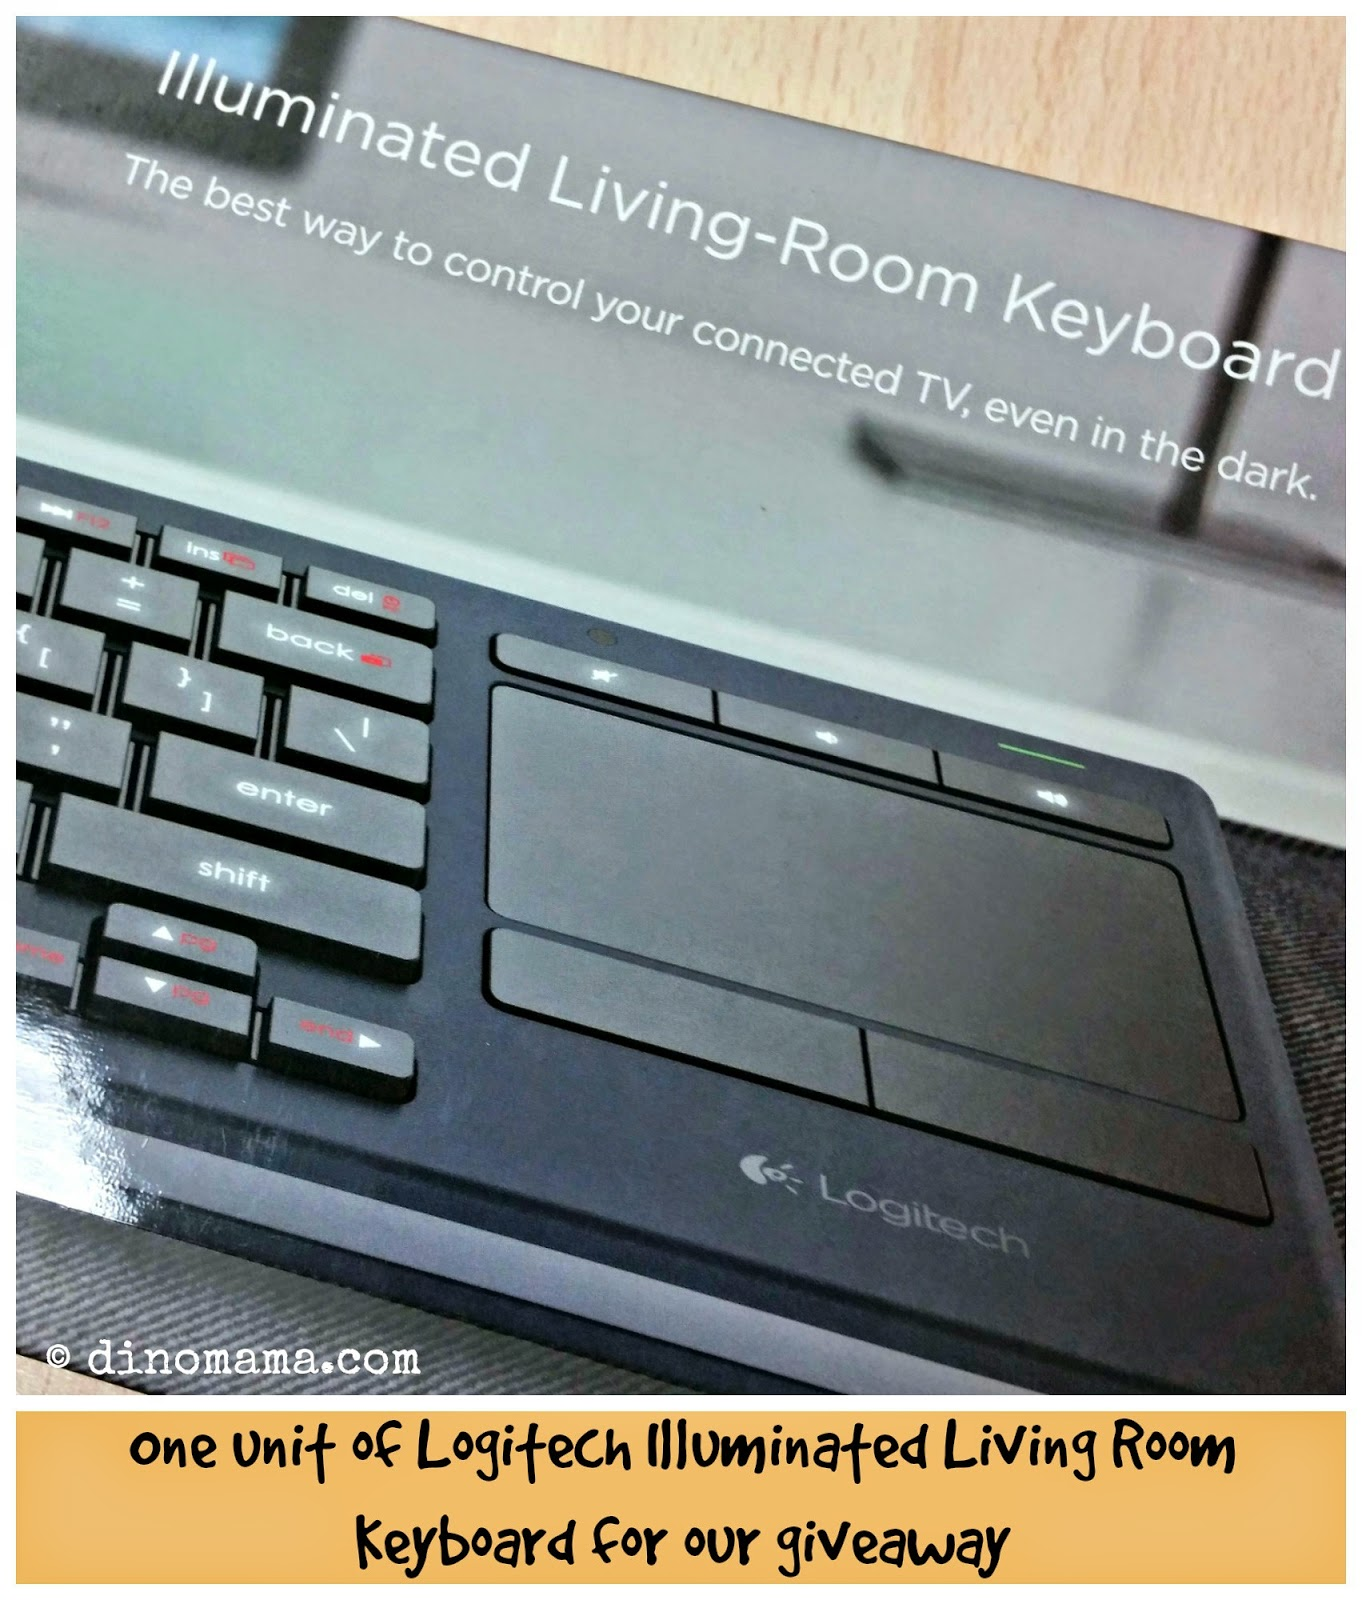 Logitech Illuminated LivingRoom Keyboard K830  We are